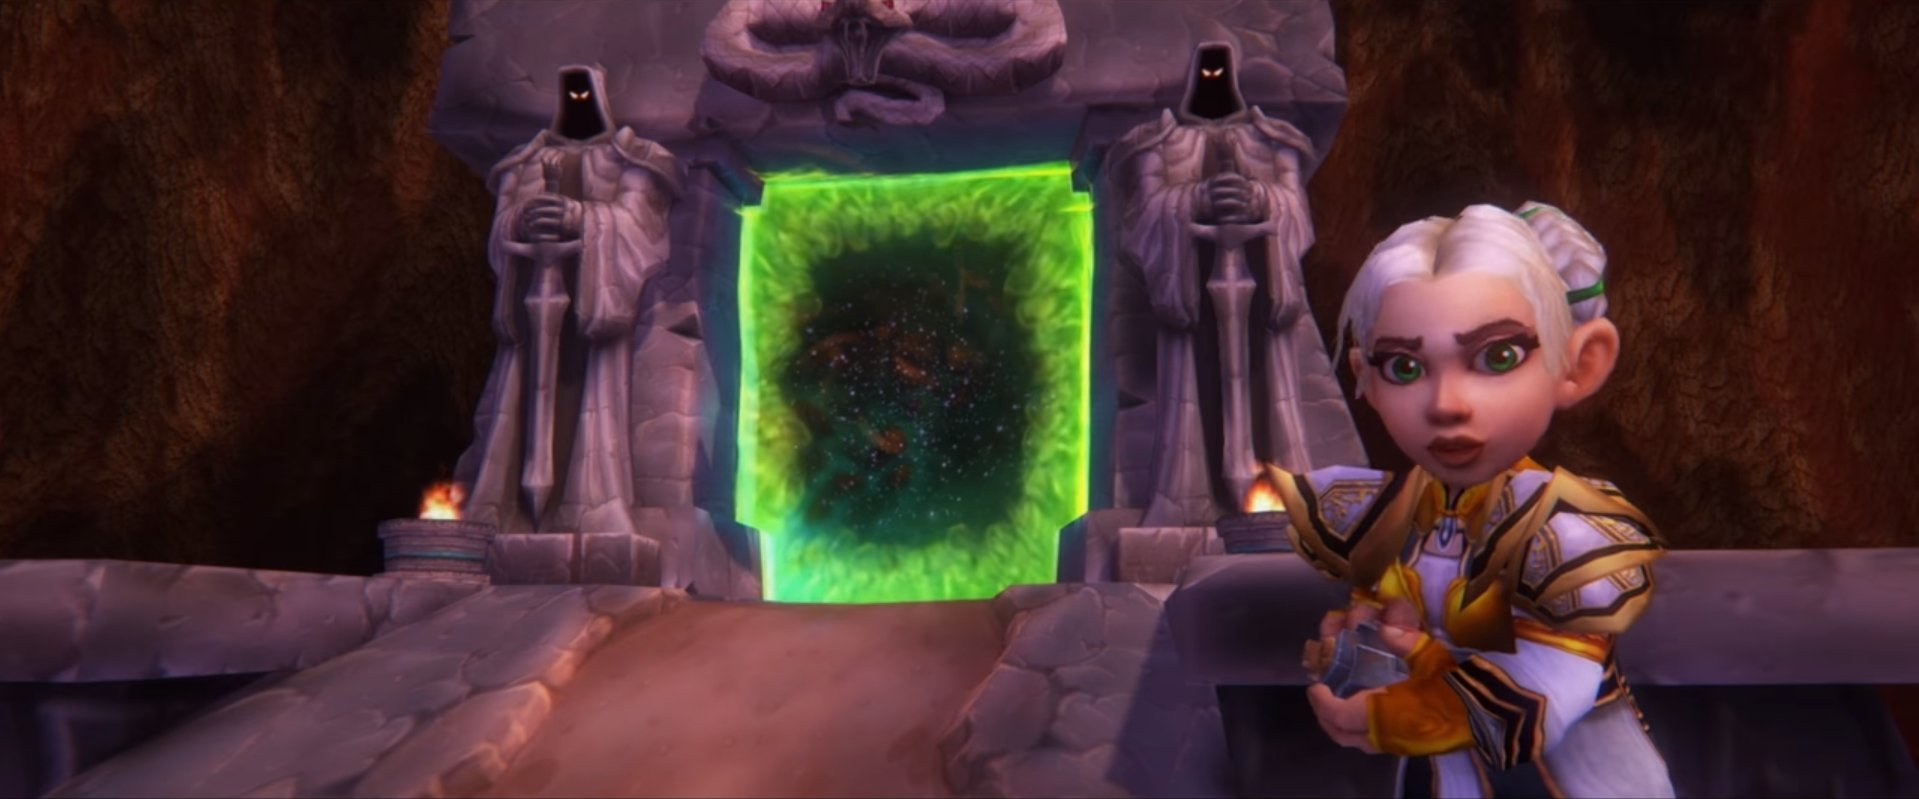 Today Marks The Birthday Of Two World Of Warcraft Expansions, Wrath Of The Lich King And Warlords Of Draenor